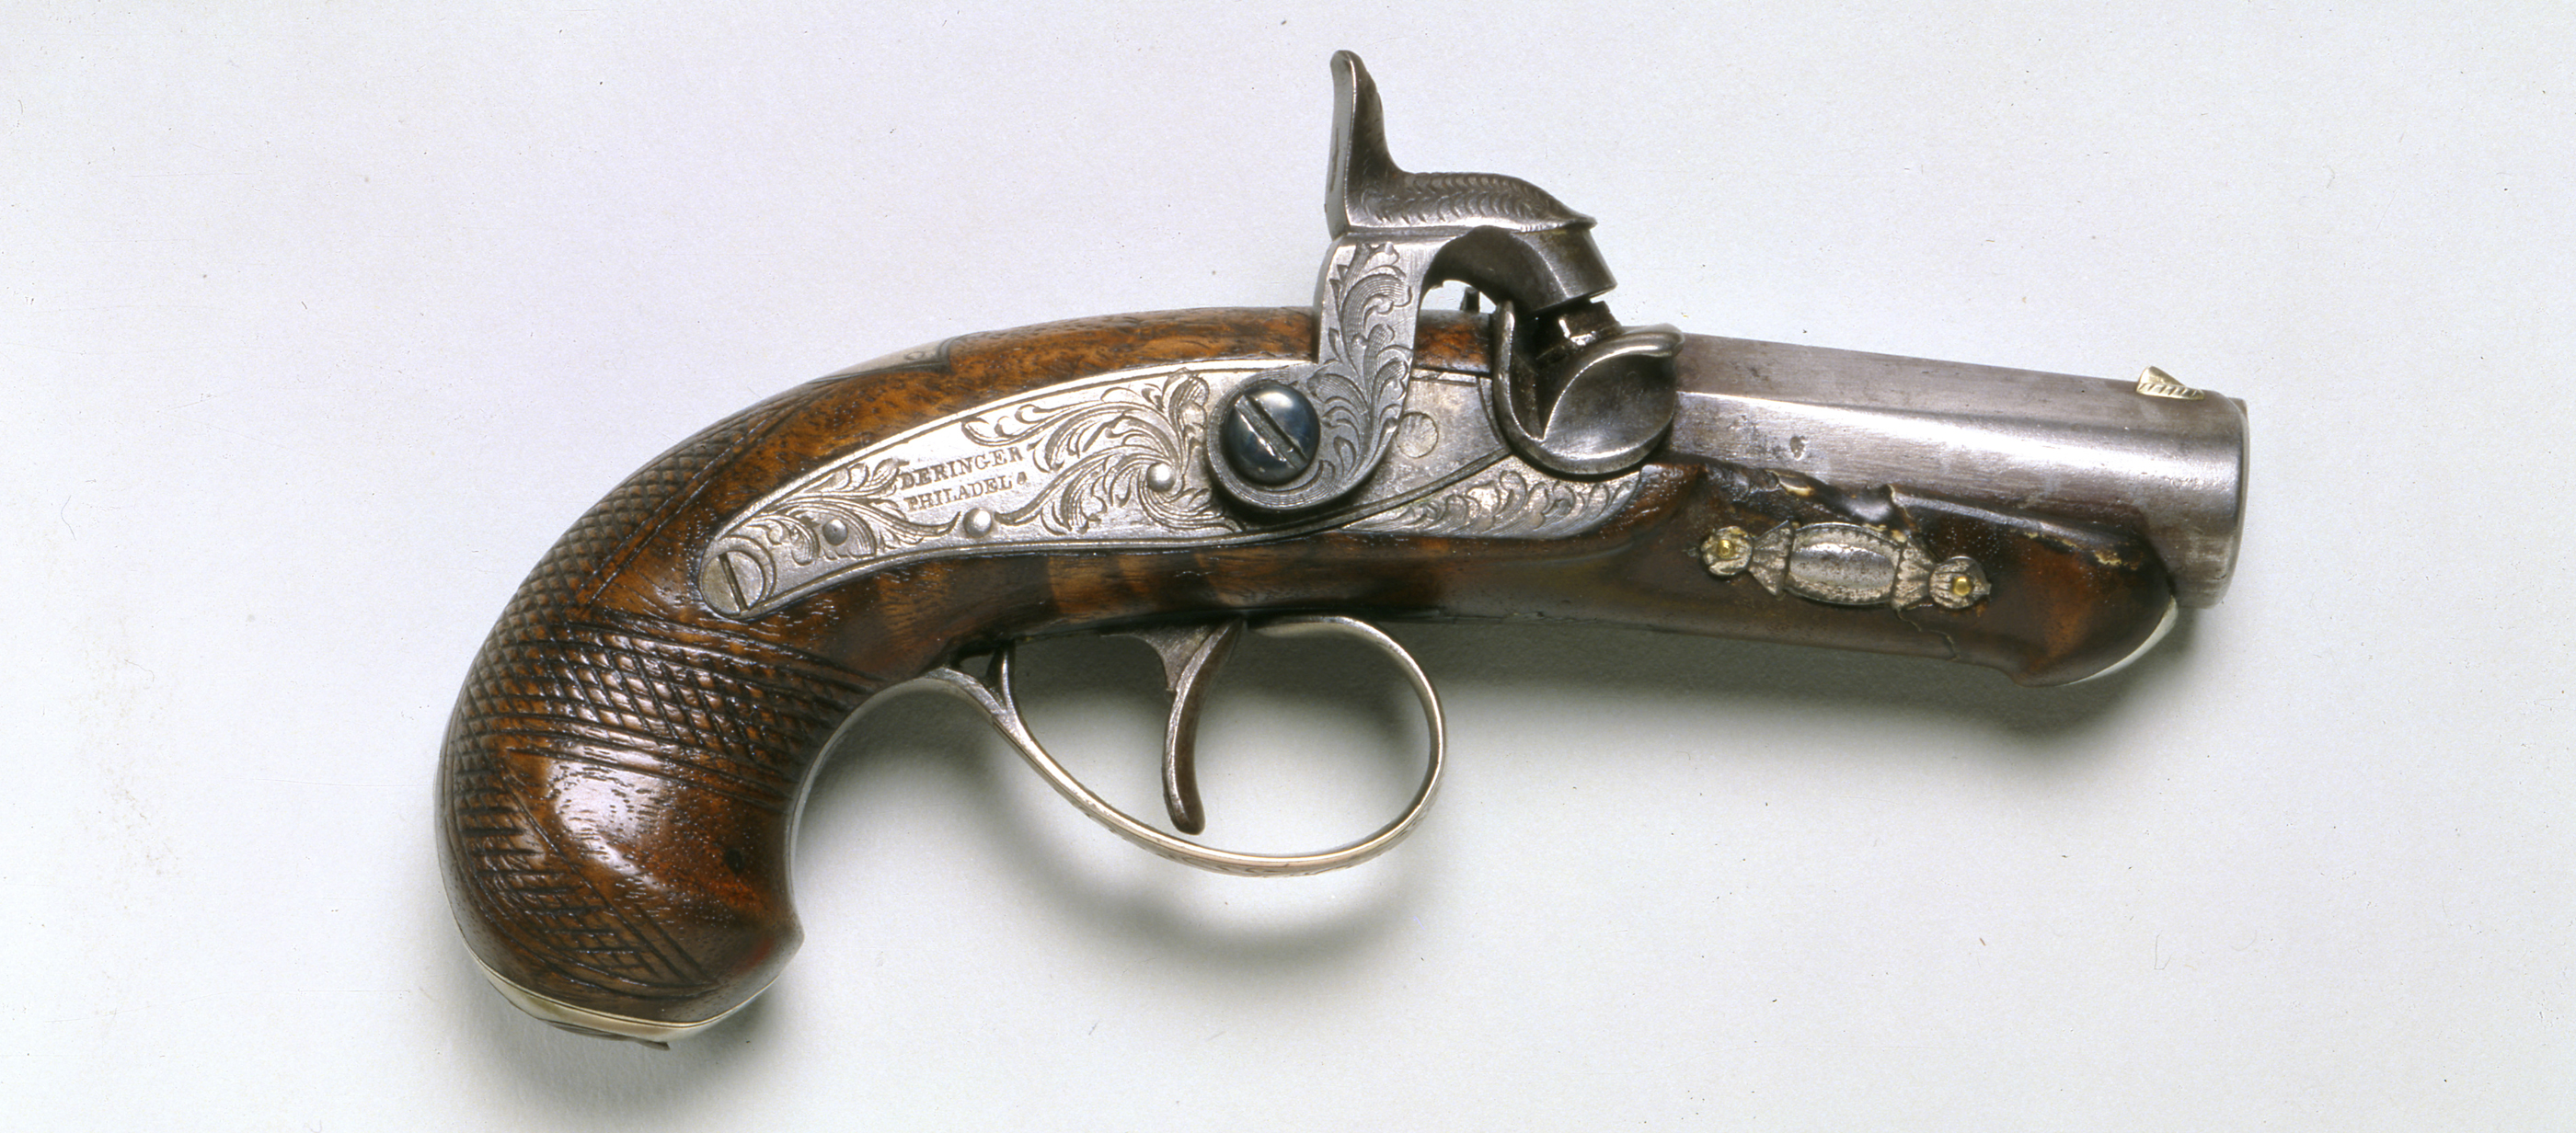 Derringer pistol used by John Wilkes Booth to assassinate President Abraham Lincoln